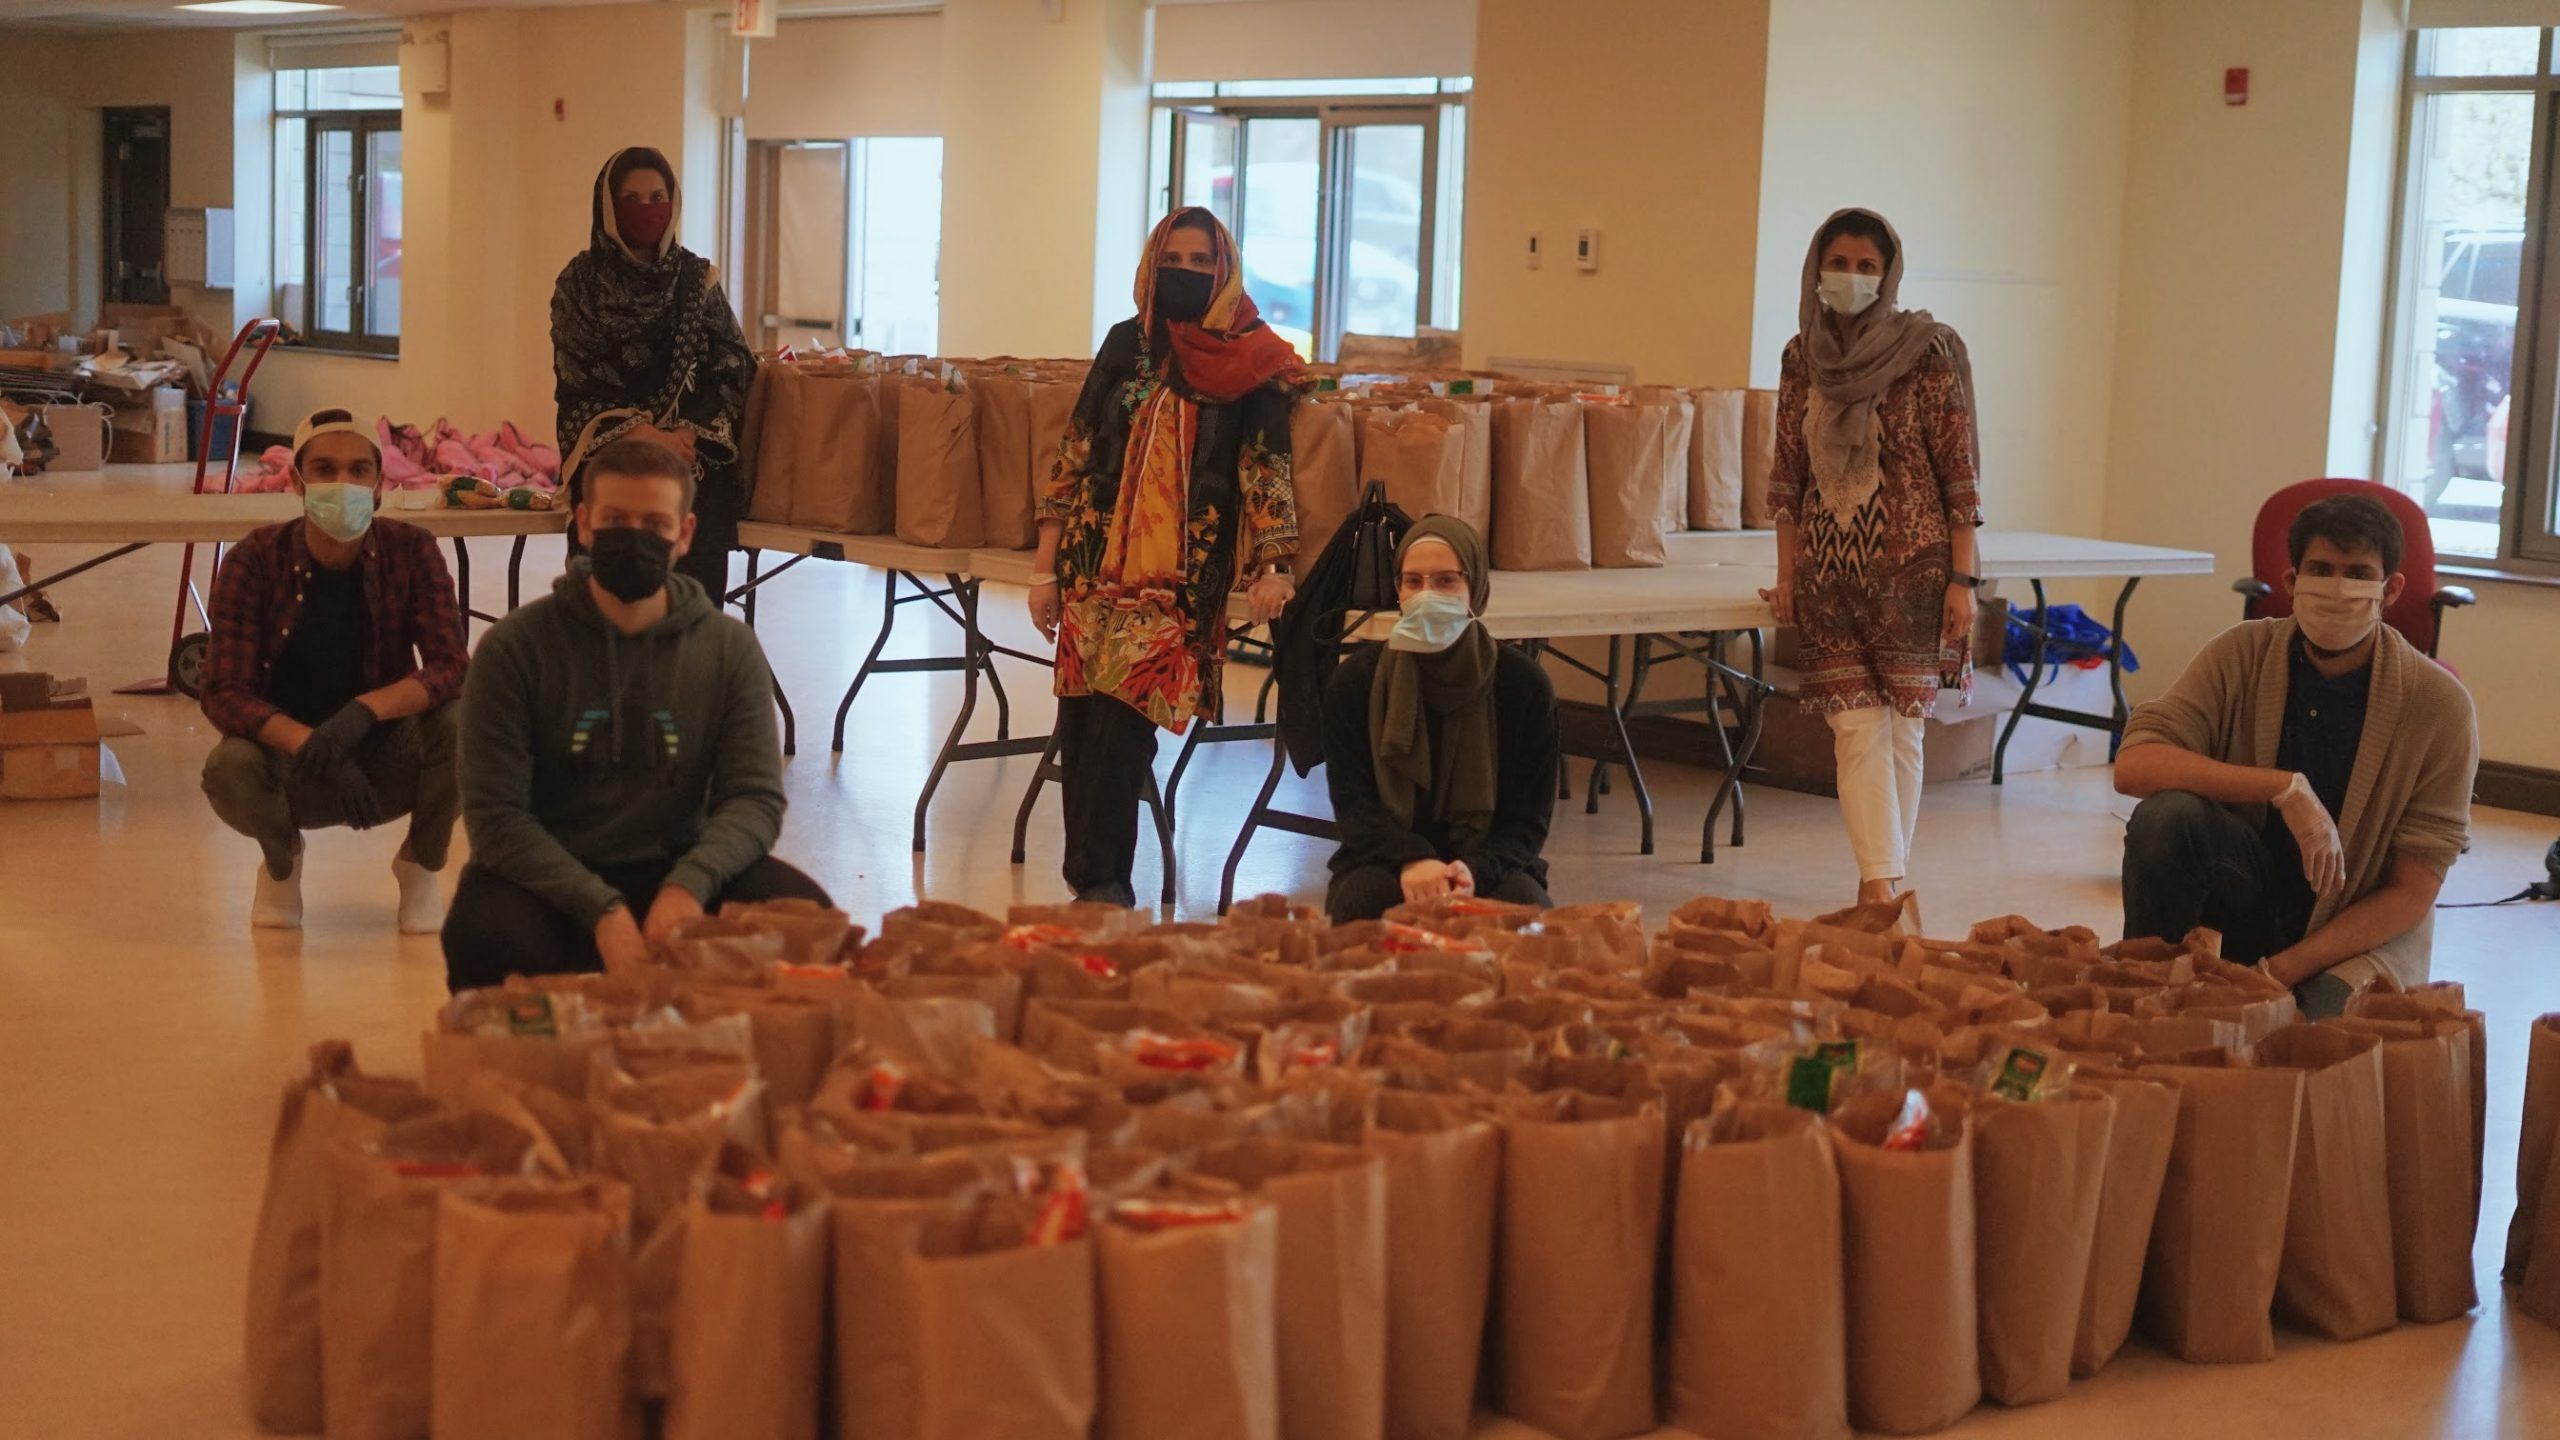 7 volunteers pose (socially distanced) in front of packed aid bags